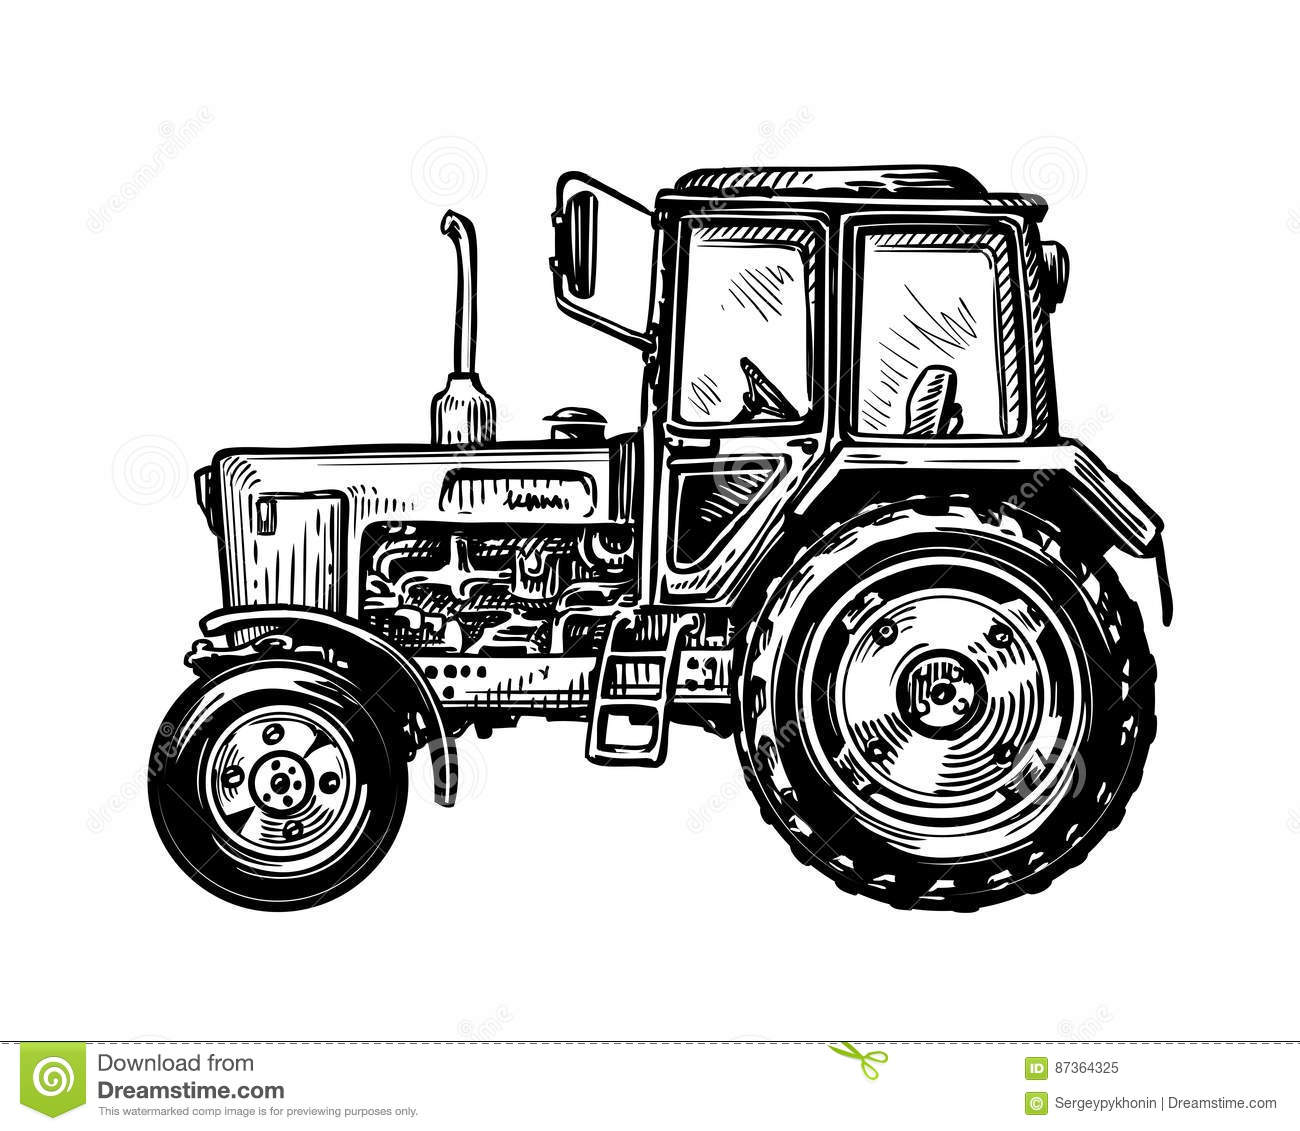 plough cartoons illustrations vector stock images 353 pictures to download from. Black Bedroom Furniture Sets. Home Design Ideas